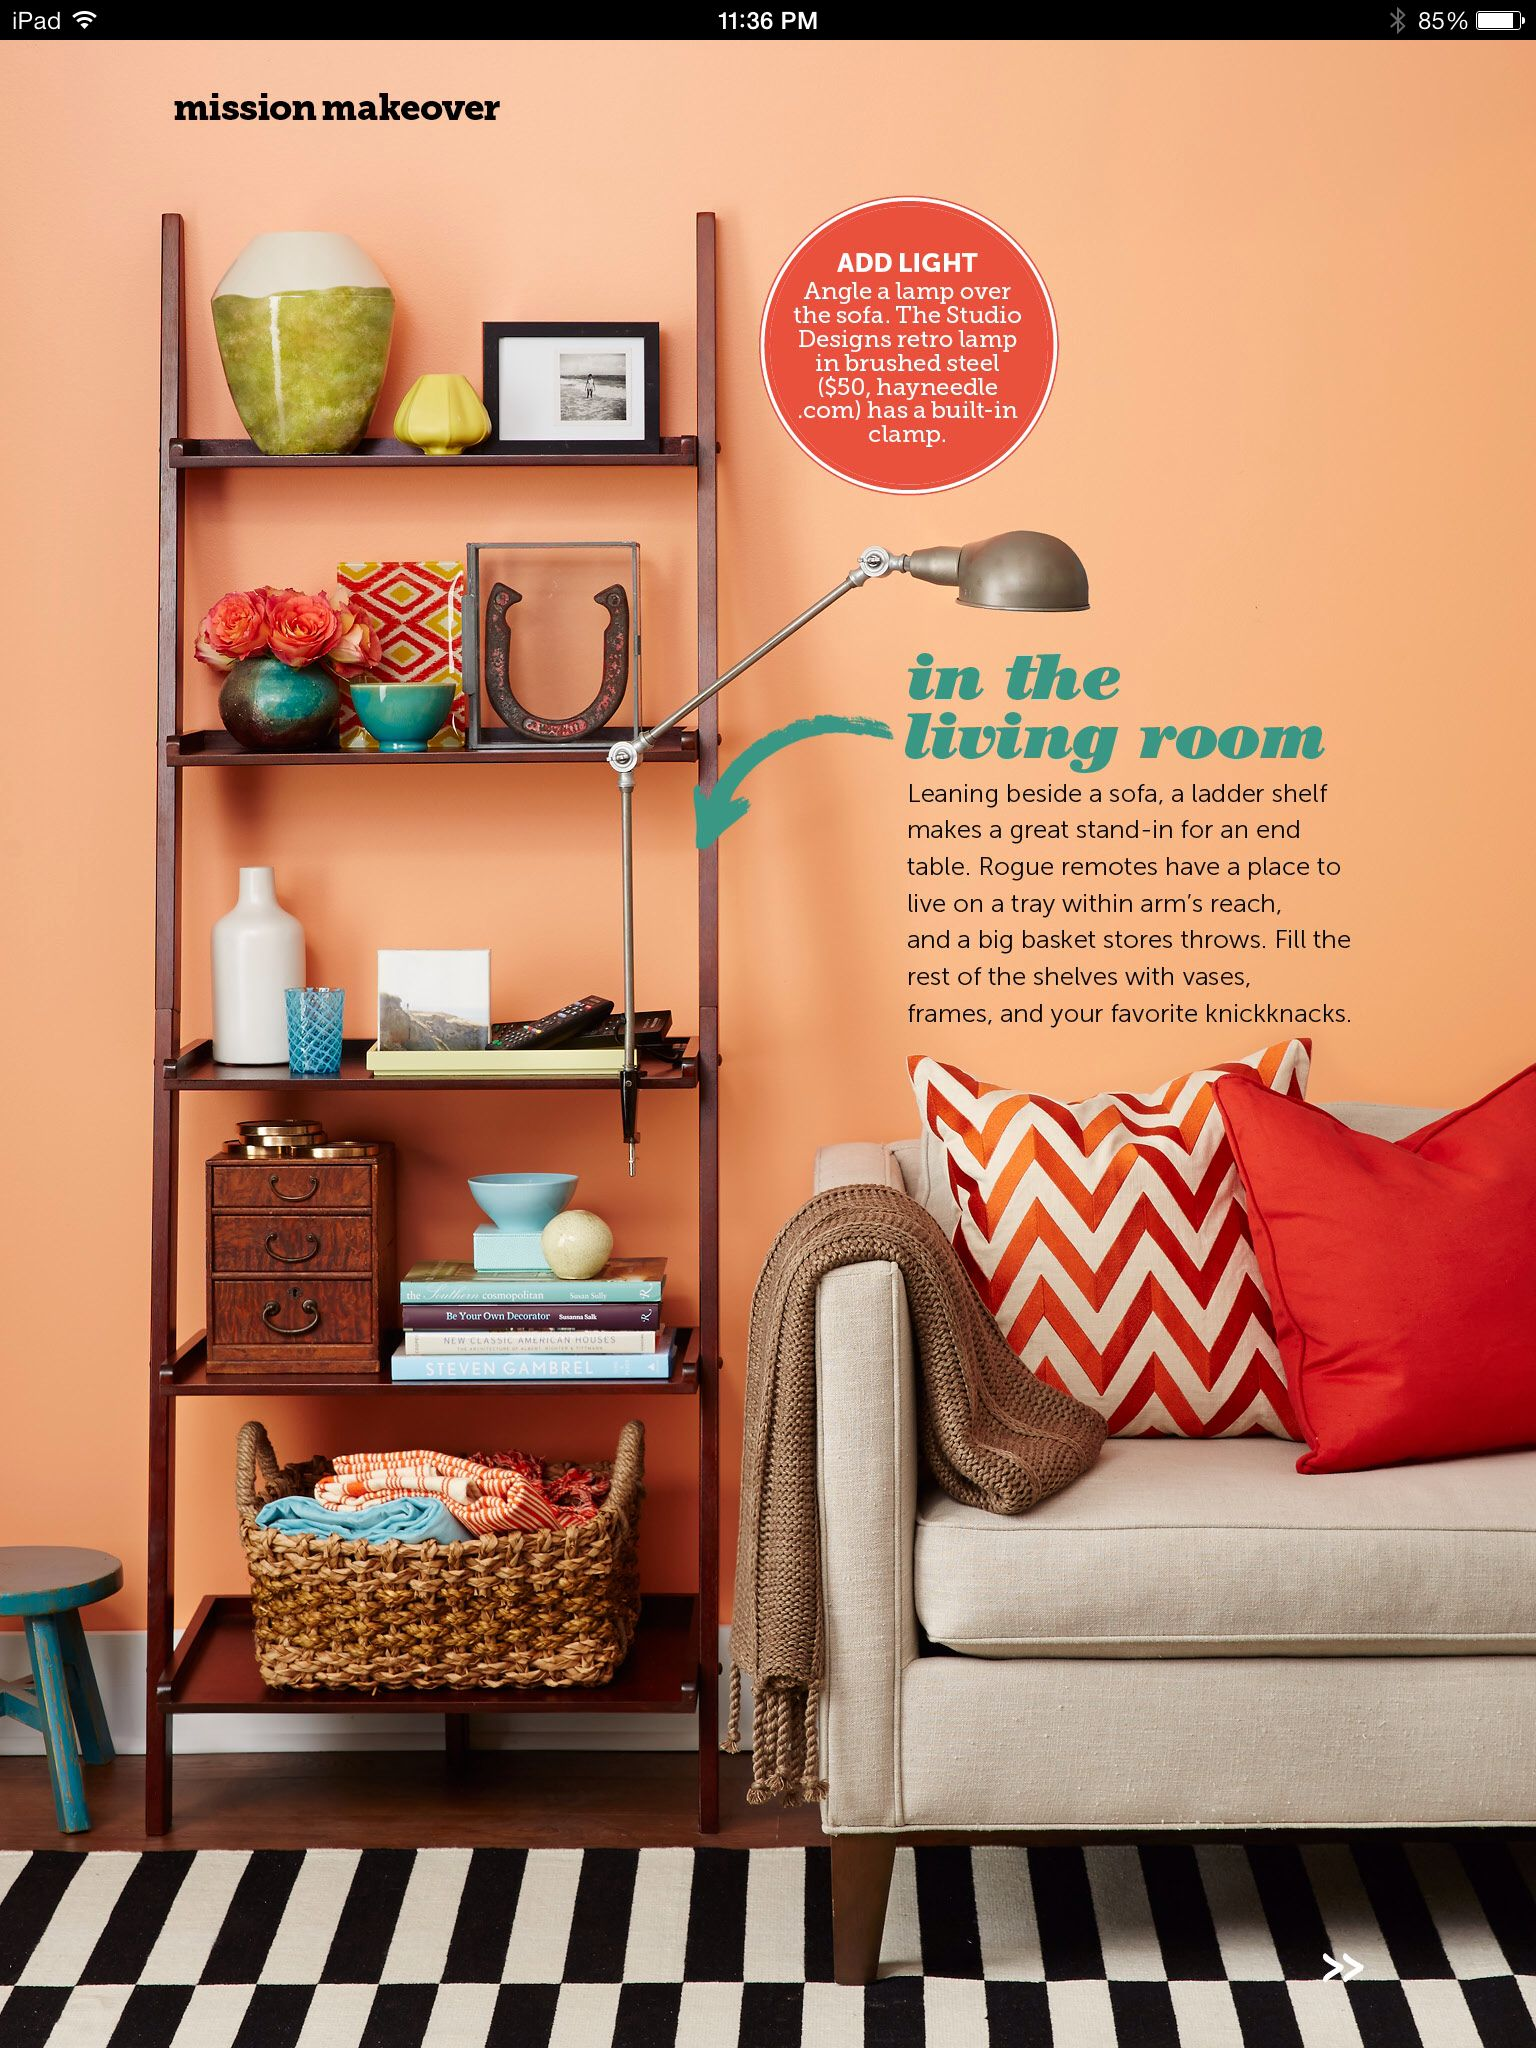 Clip Lamp On Bookshelf Living Room Goals Bookshelves Bookcase Sofa Tables Rugs